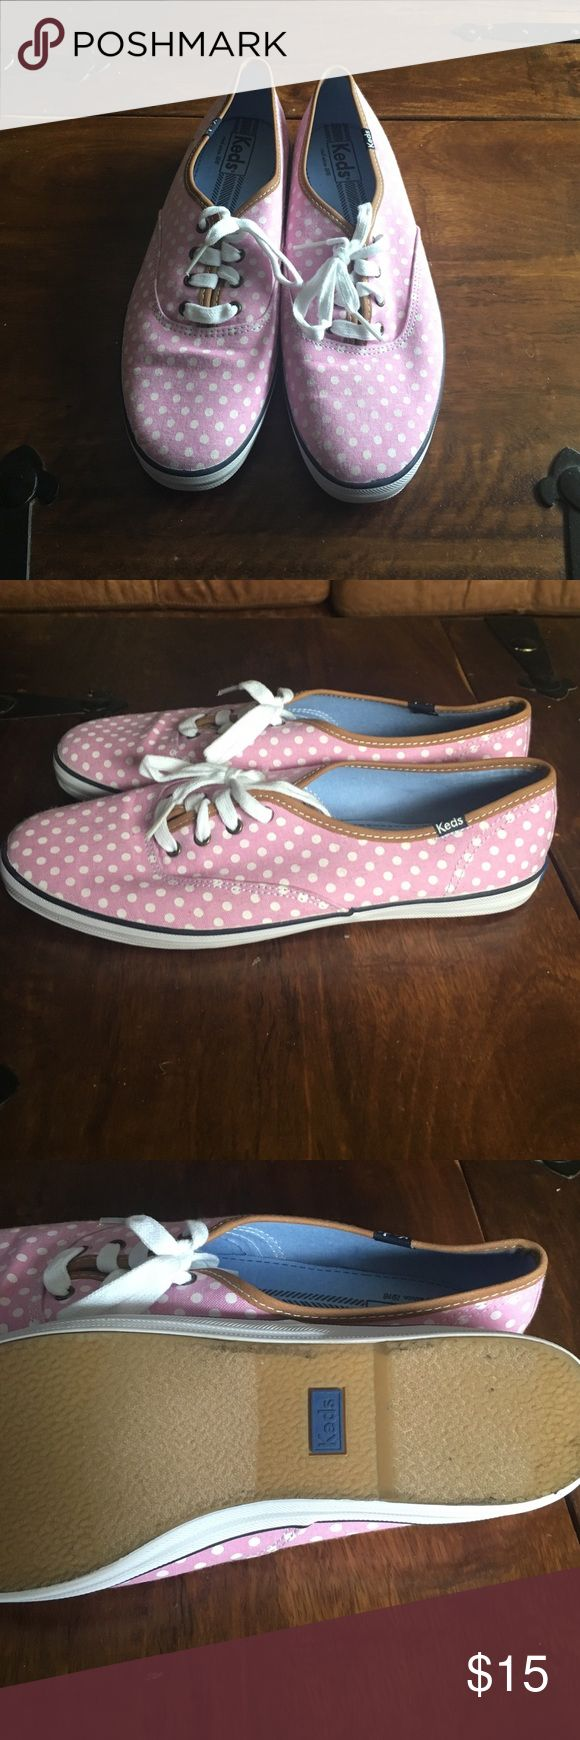 KEDS Sneakers in Pink with White Polka Dots KEDS Sneakers in Pink with White Polka Dots. Worn once, but like new condition. Keds Shoes Sneakers